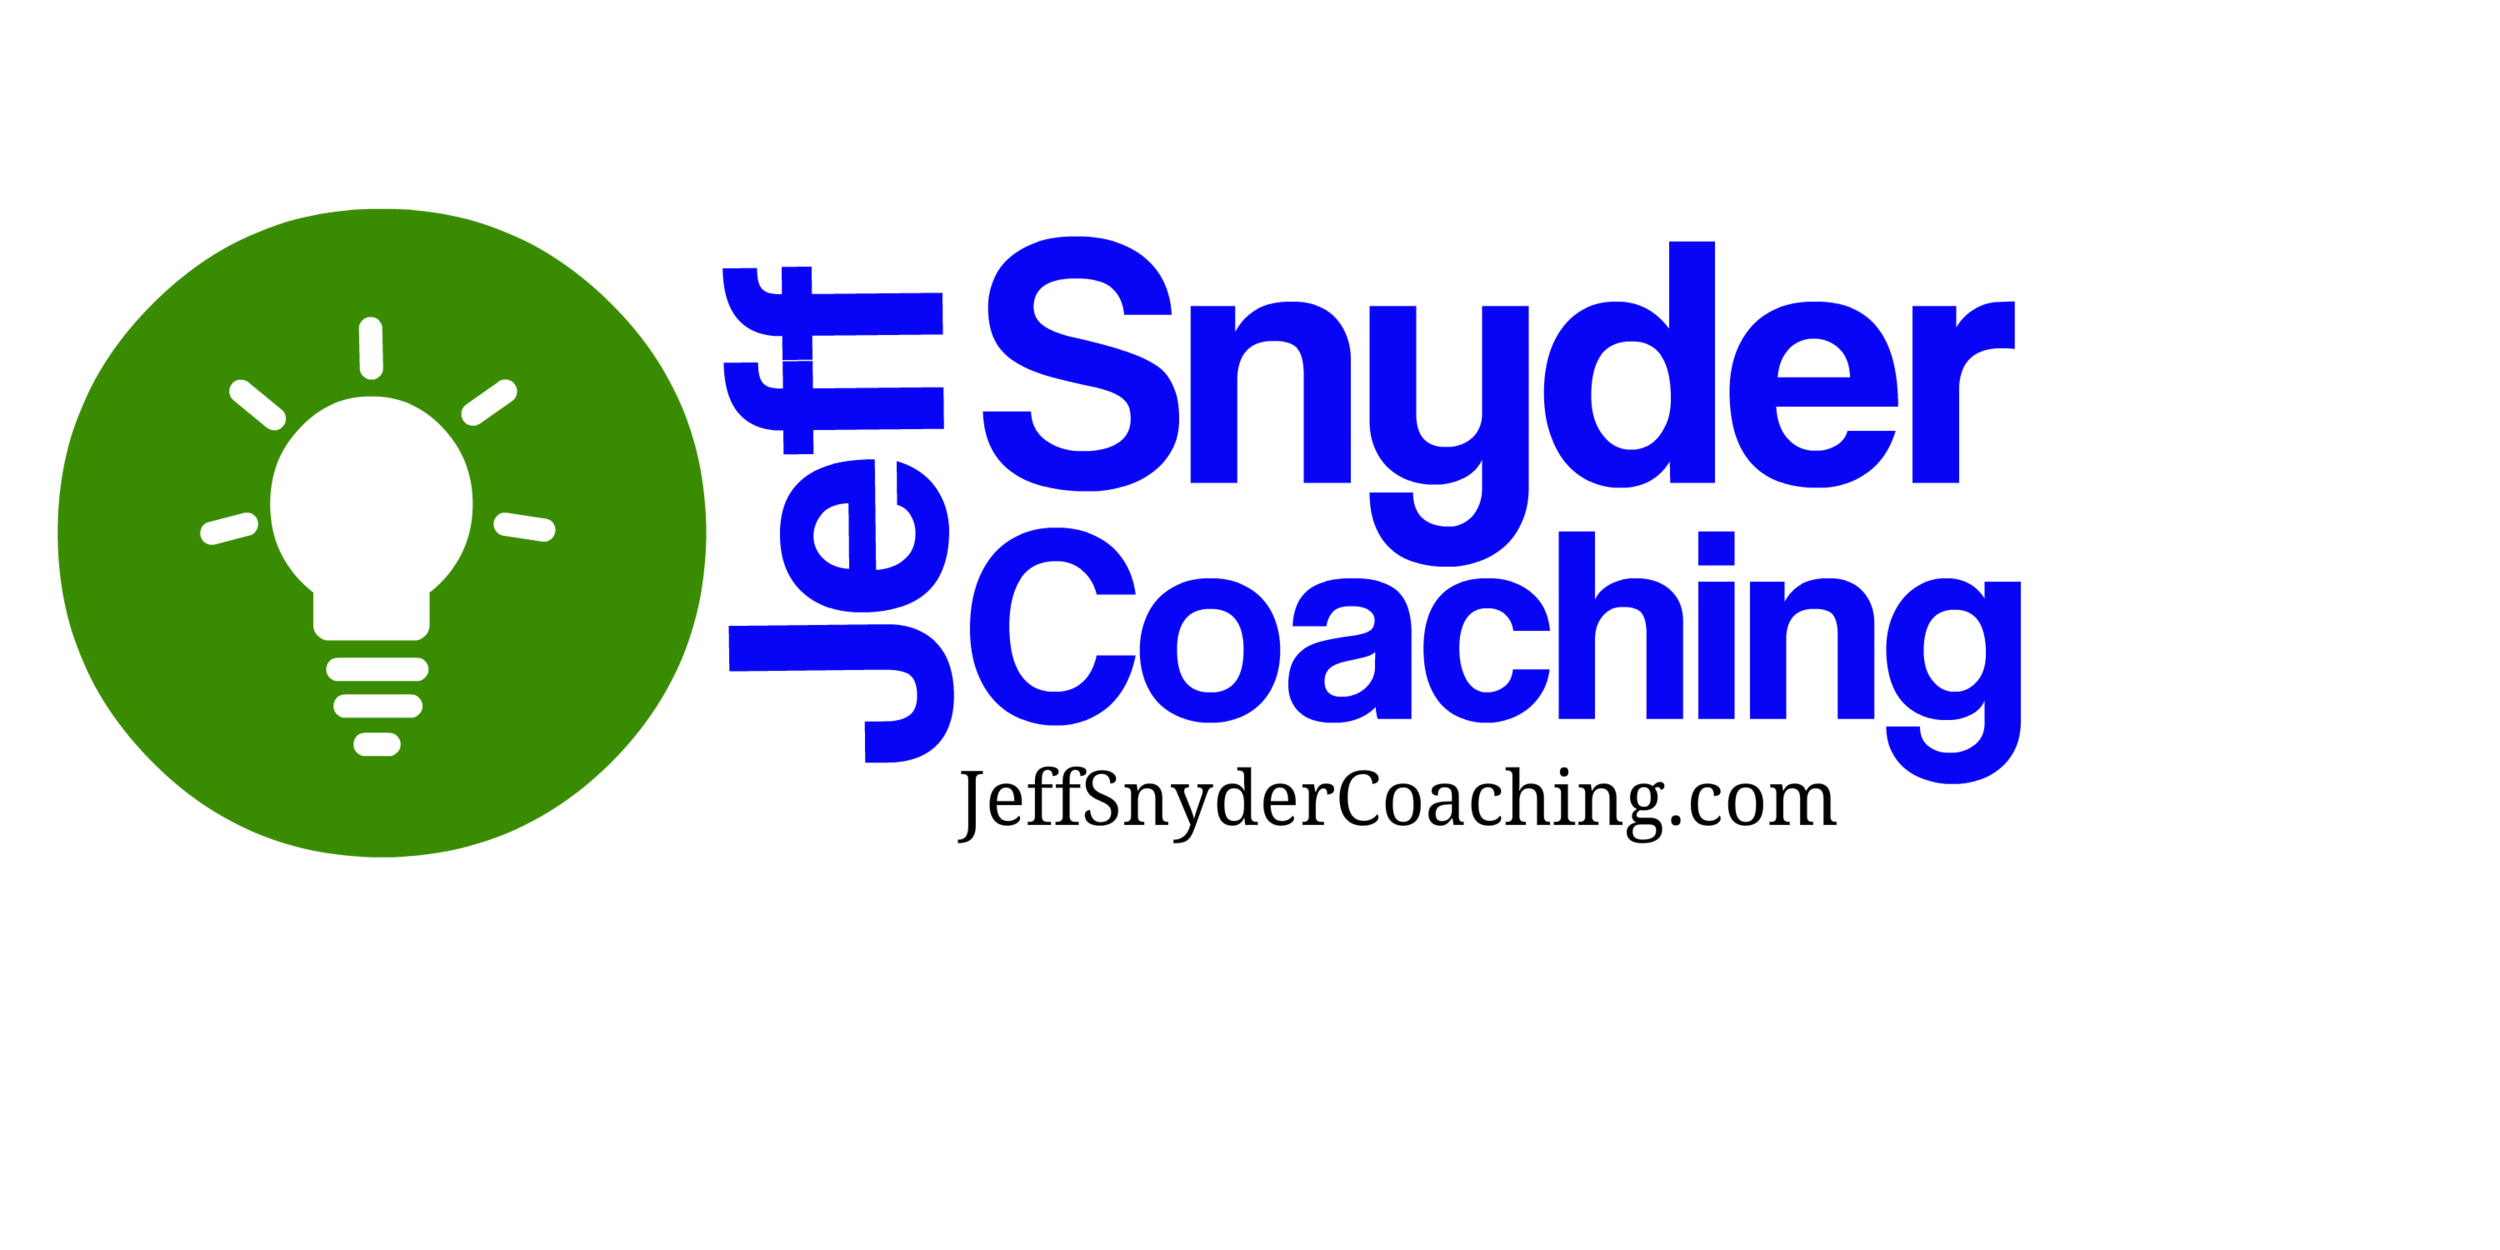 Jeff_Snyder_Coaching_Logo_2017_II_PNG.png